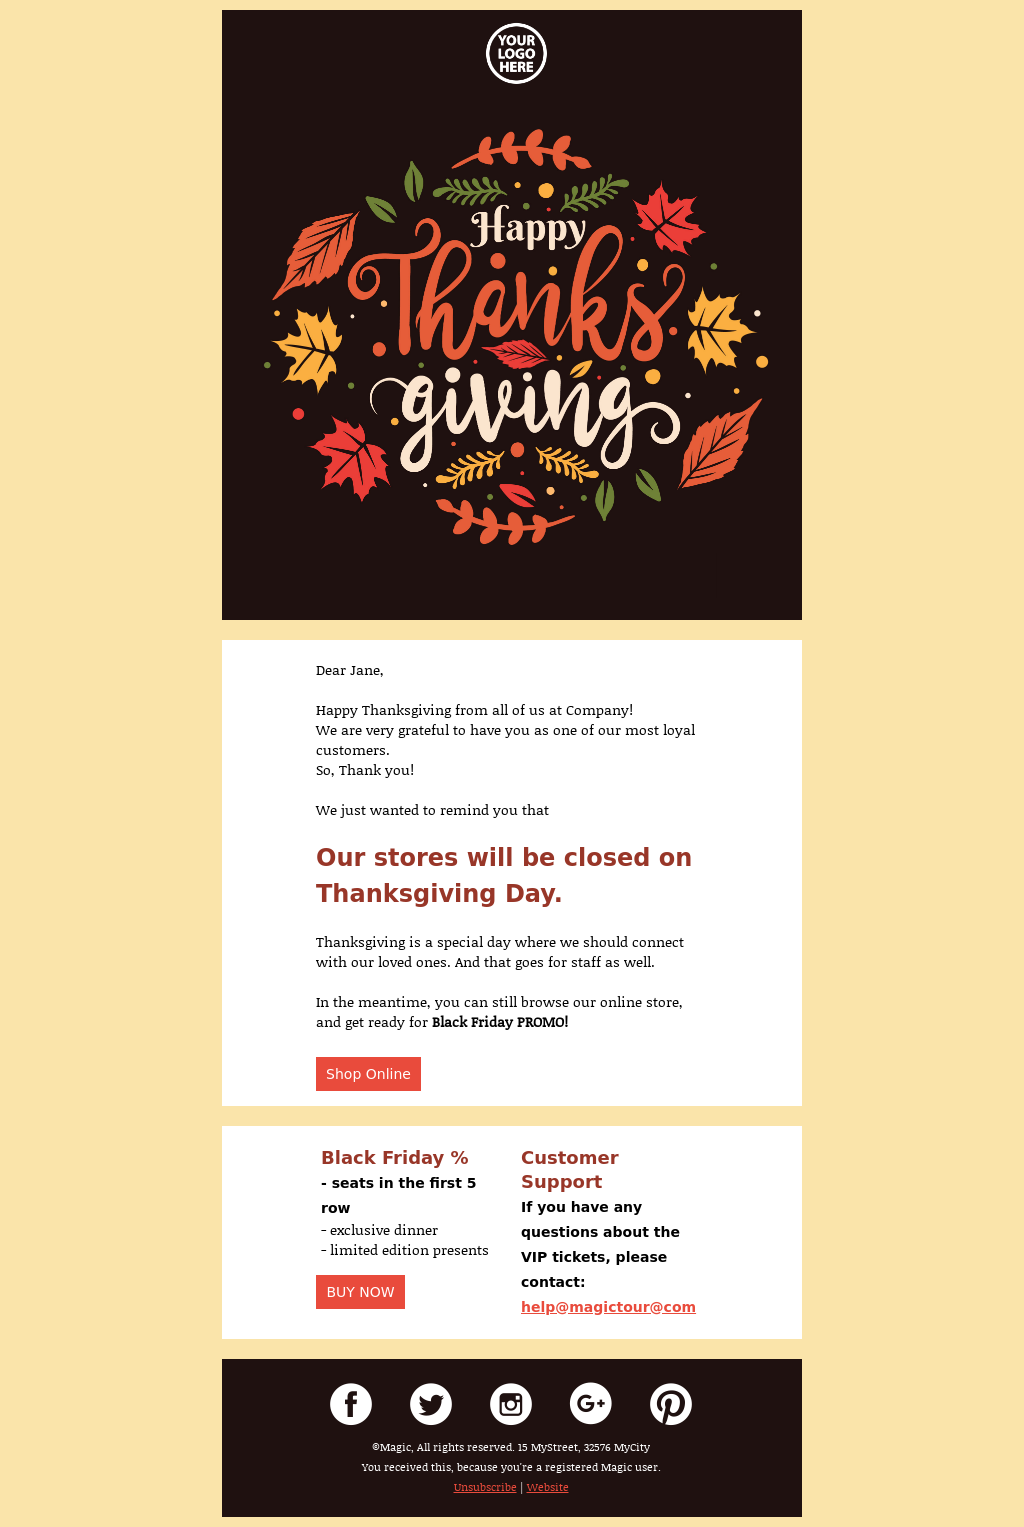 Office (Stores) Closed for Thanksgiving Email Template